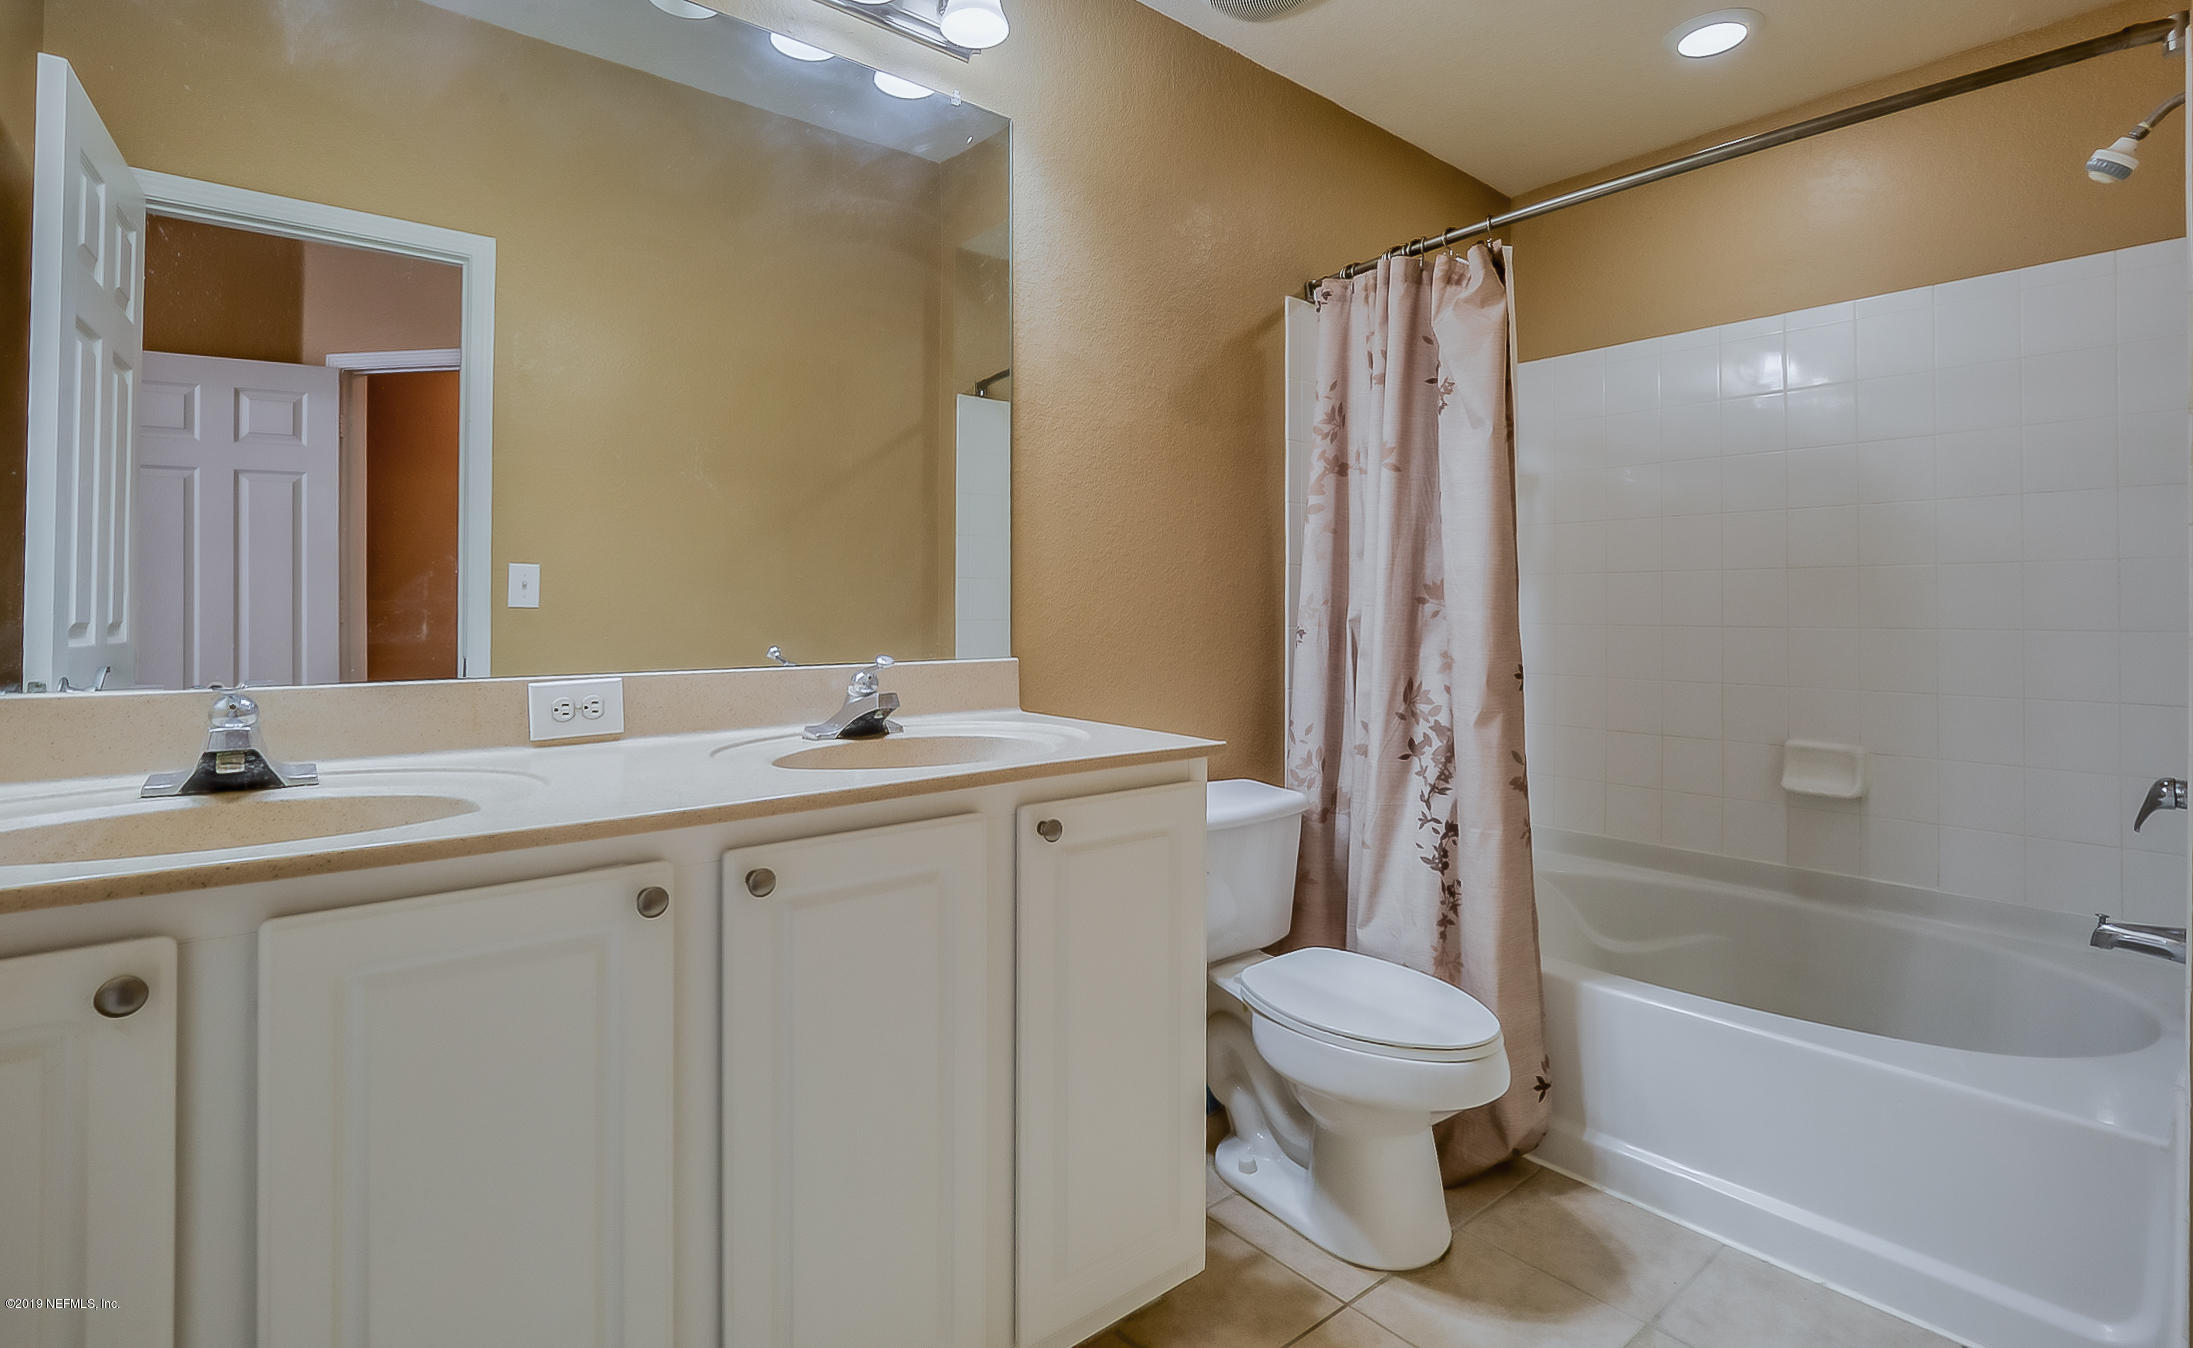 10075 GATE, JACKSONVILLE, FLORIDA 32246, 2 Bedrooms Bedrooms, ,2 BathroomsBathrooms,Residential - condos/townhomes,For sale,GATE,974108